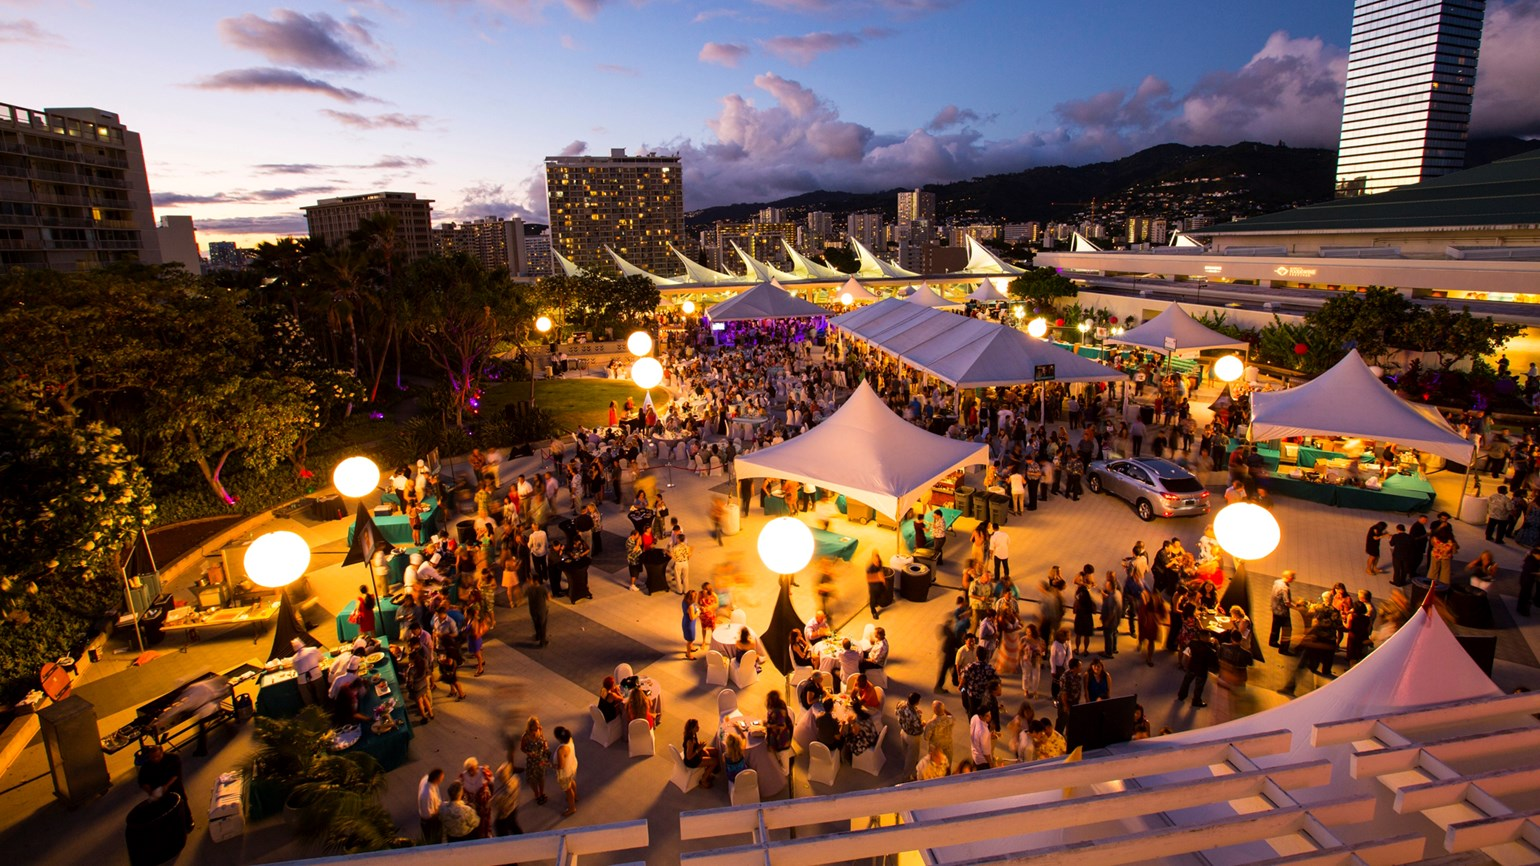 Hawaii tourism aims to build on 'fantastic' 2016: Travel